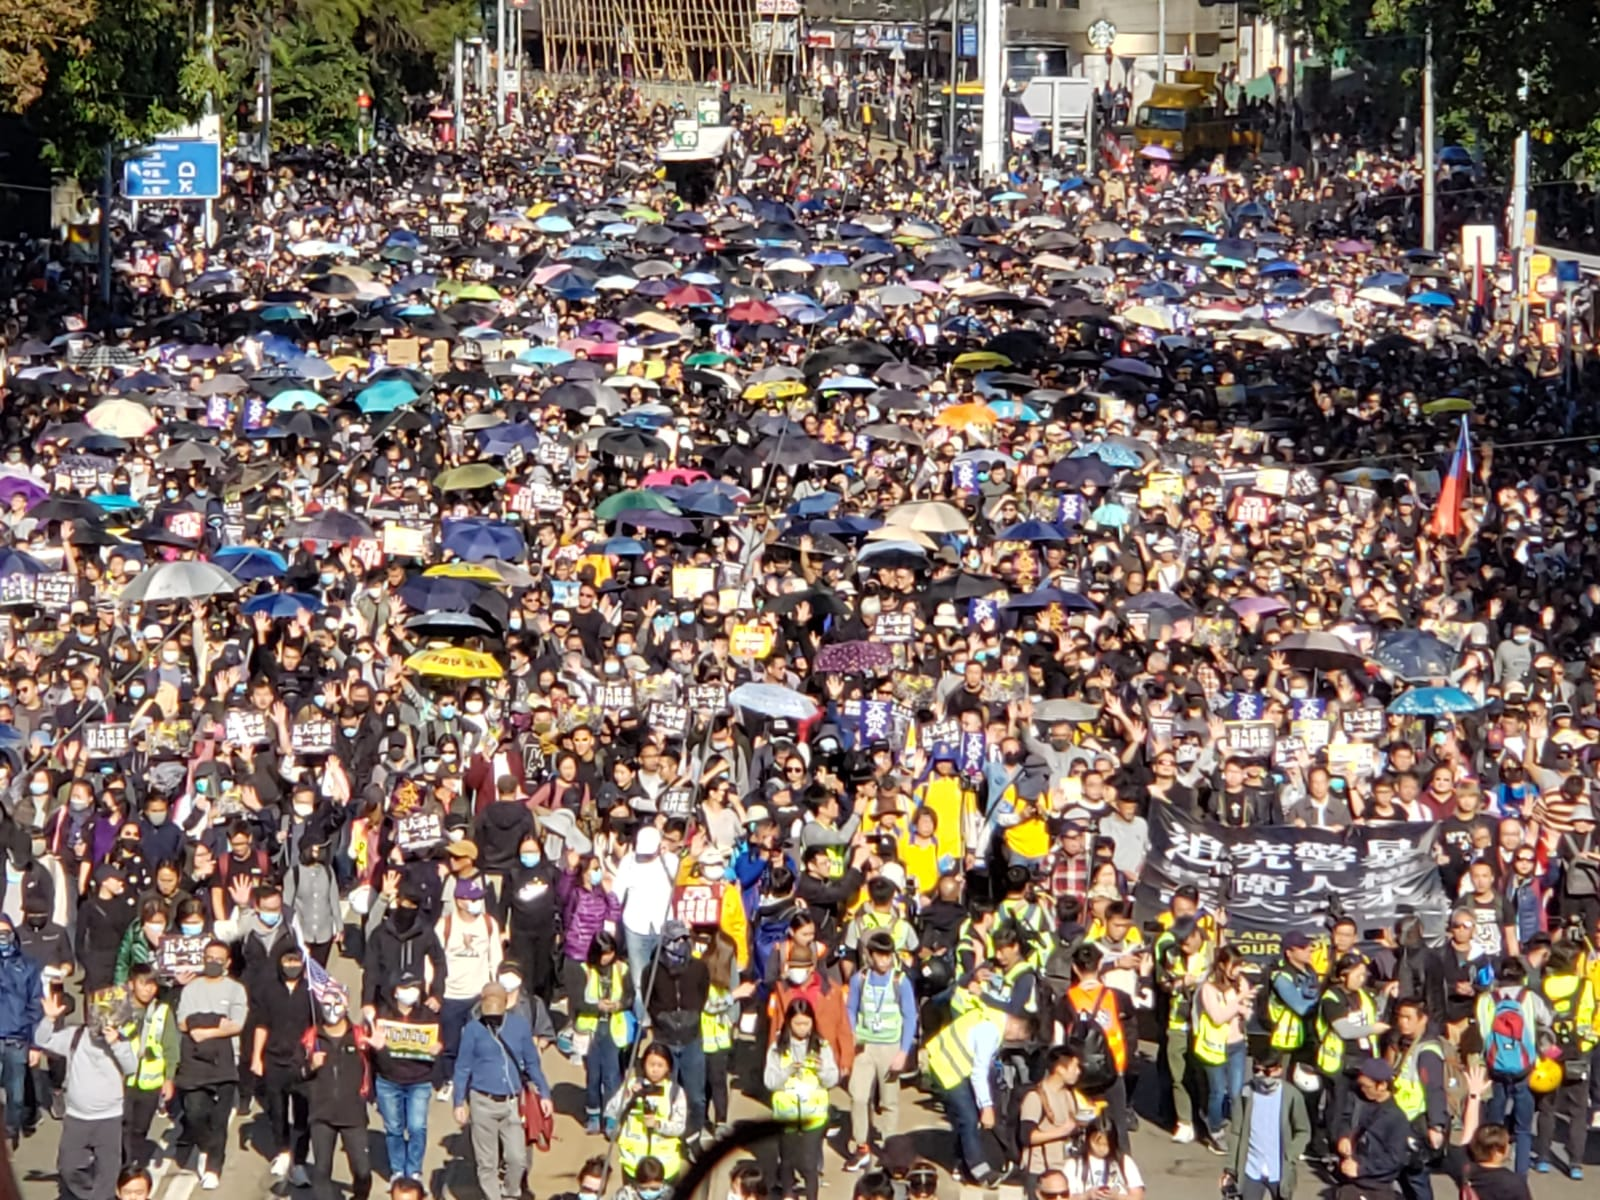 HONG KONG - CHINA March of 800 thousand marks six months of anti-extradition movement